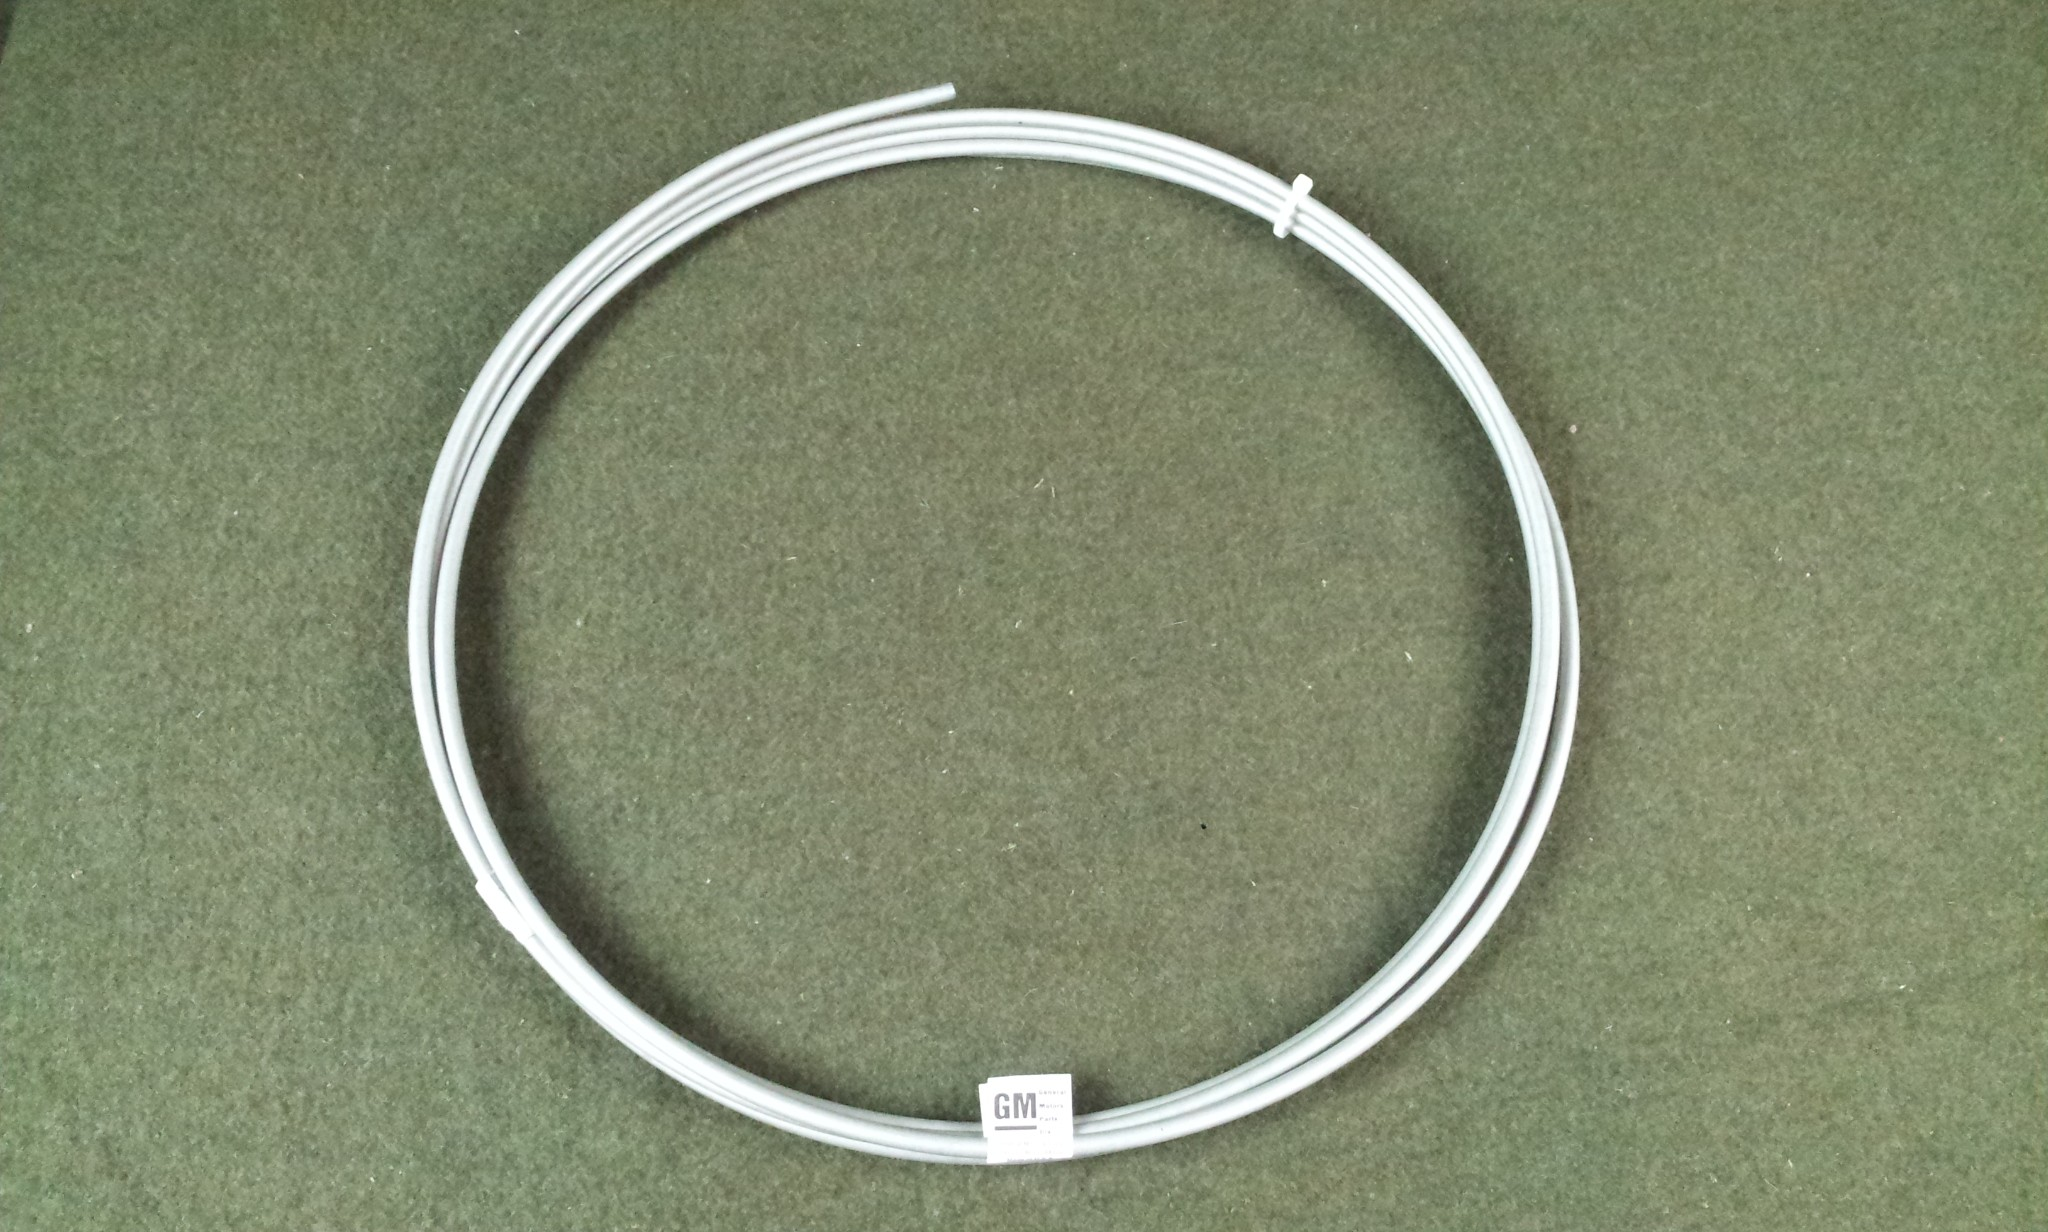 GM OEM Tubing 12548430 New 16' Length for Hydraulic Brakes and